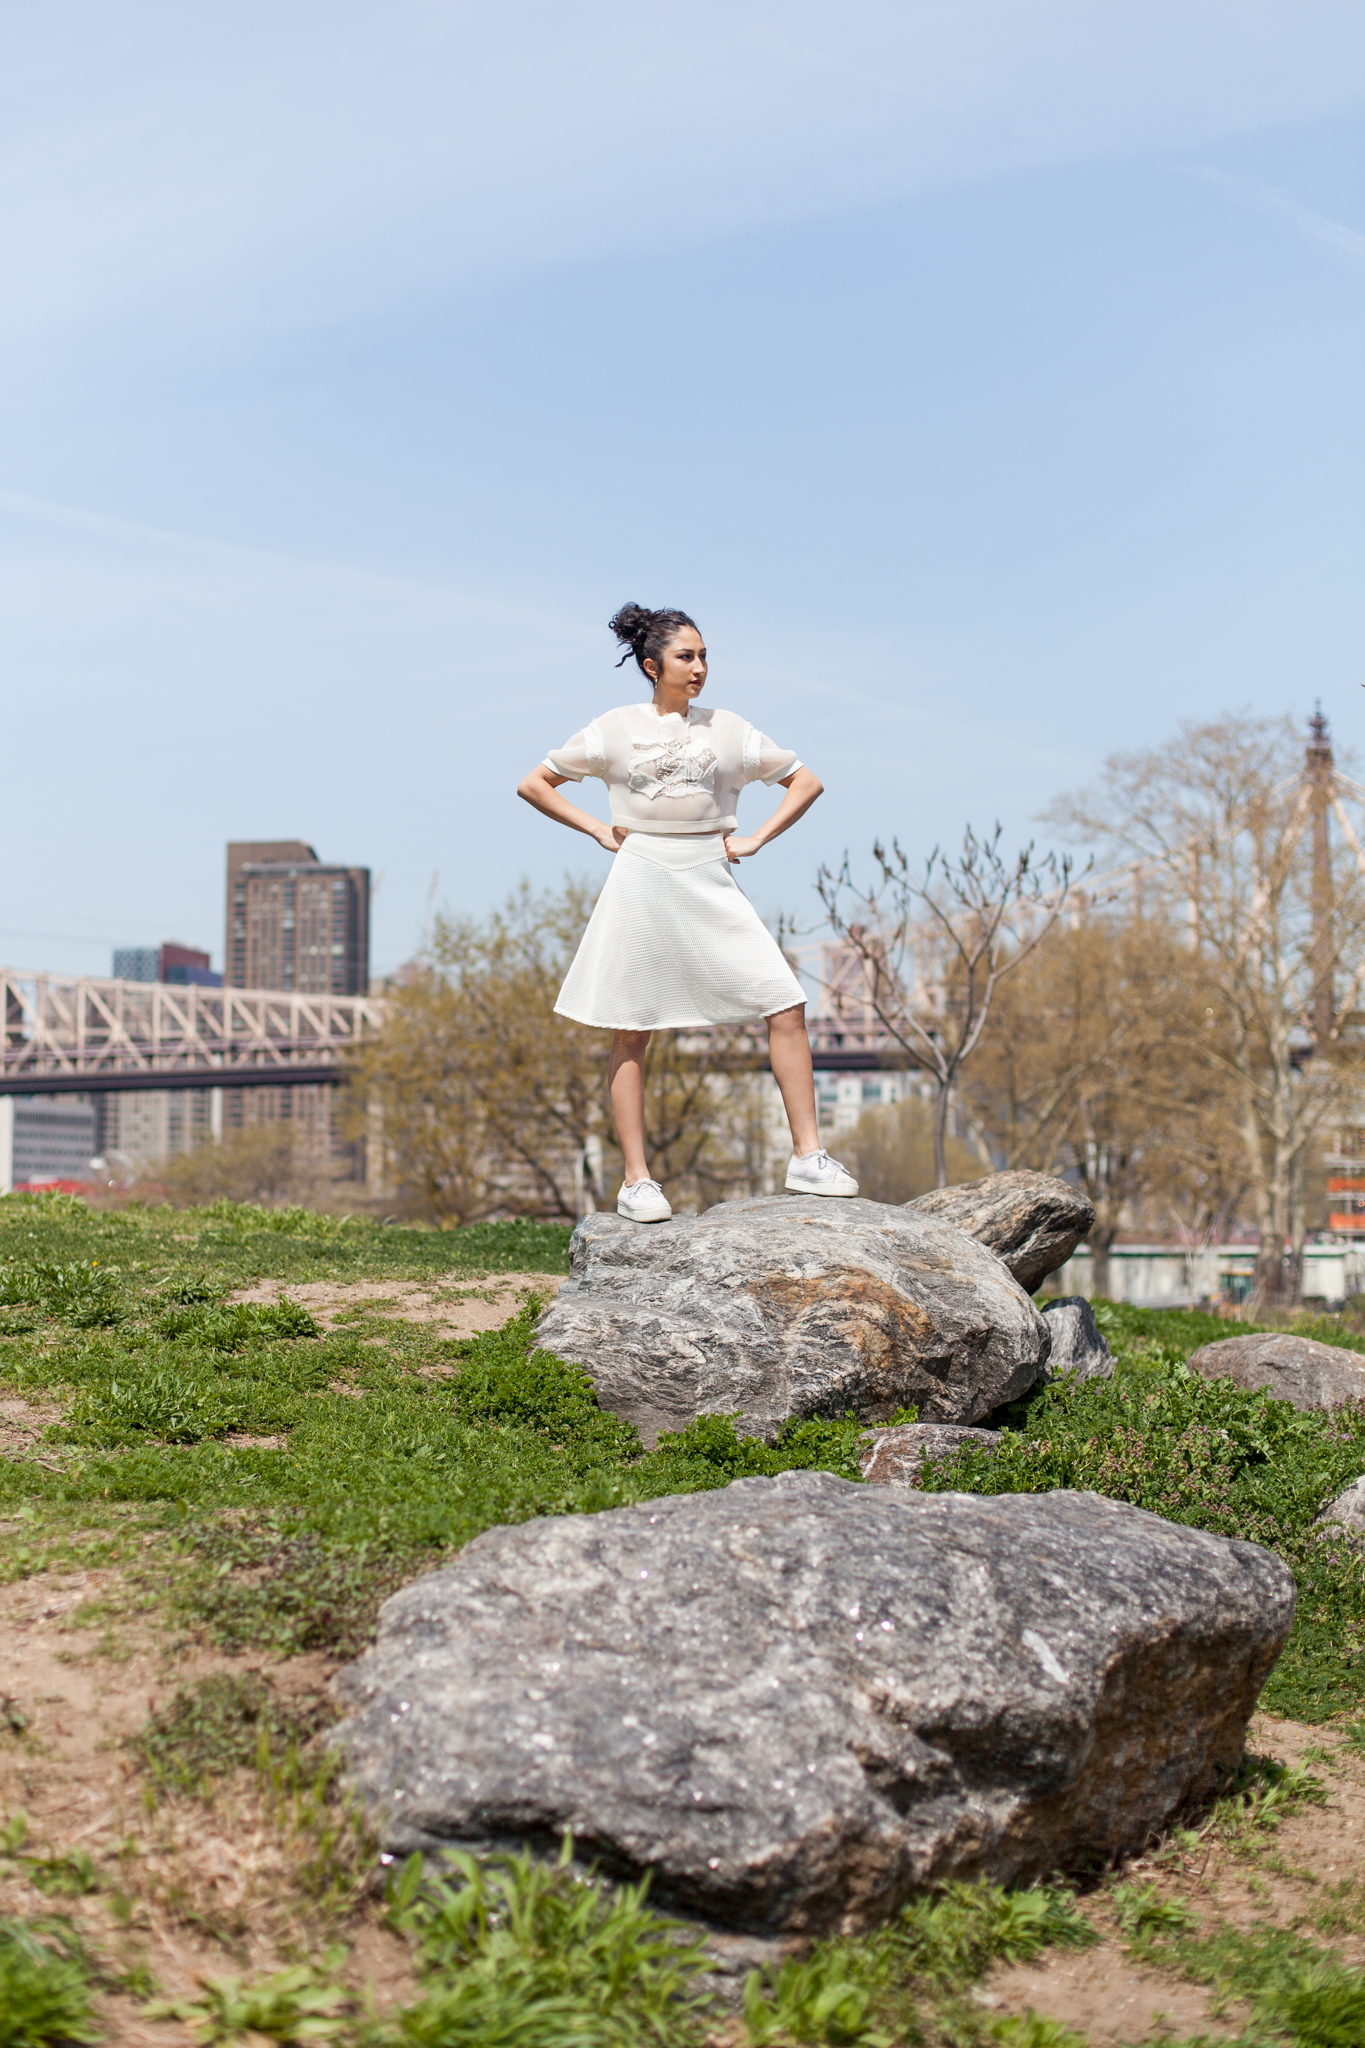 whomstudio_yurie-collins_roosevelt-island-nyc-0189_web.jpg